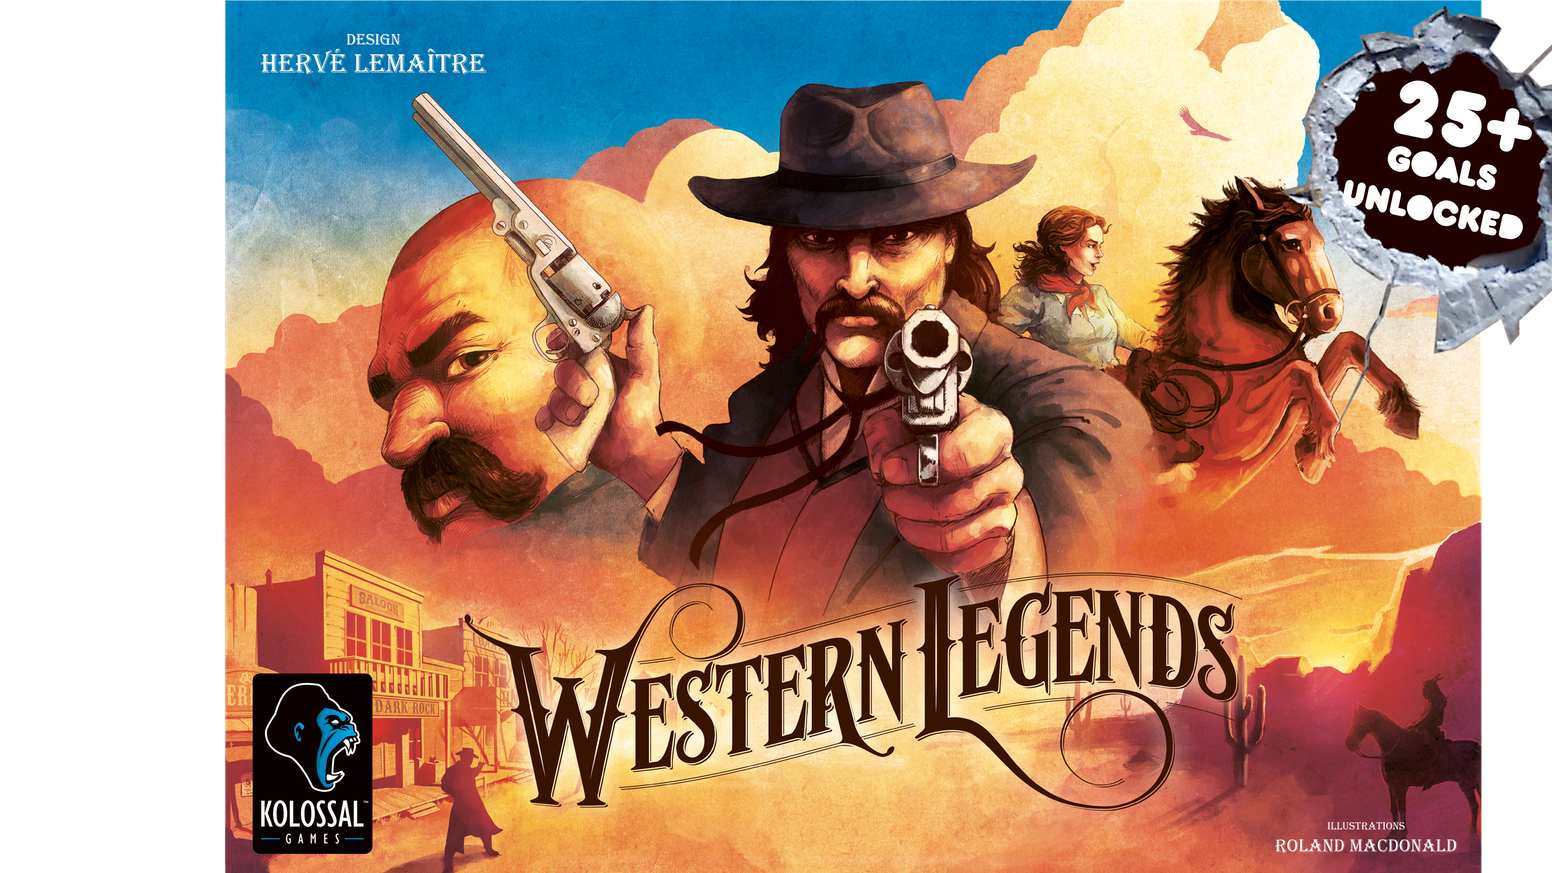 A Western tabletop adventure of legendary proportions for 2-6 players in 90 minutes or less.